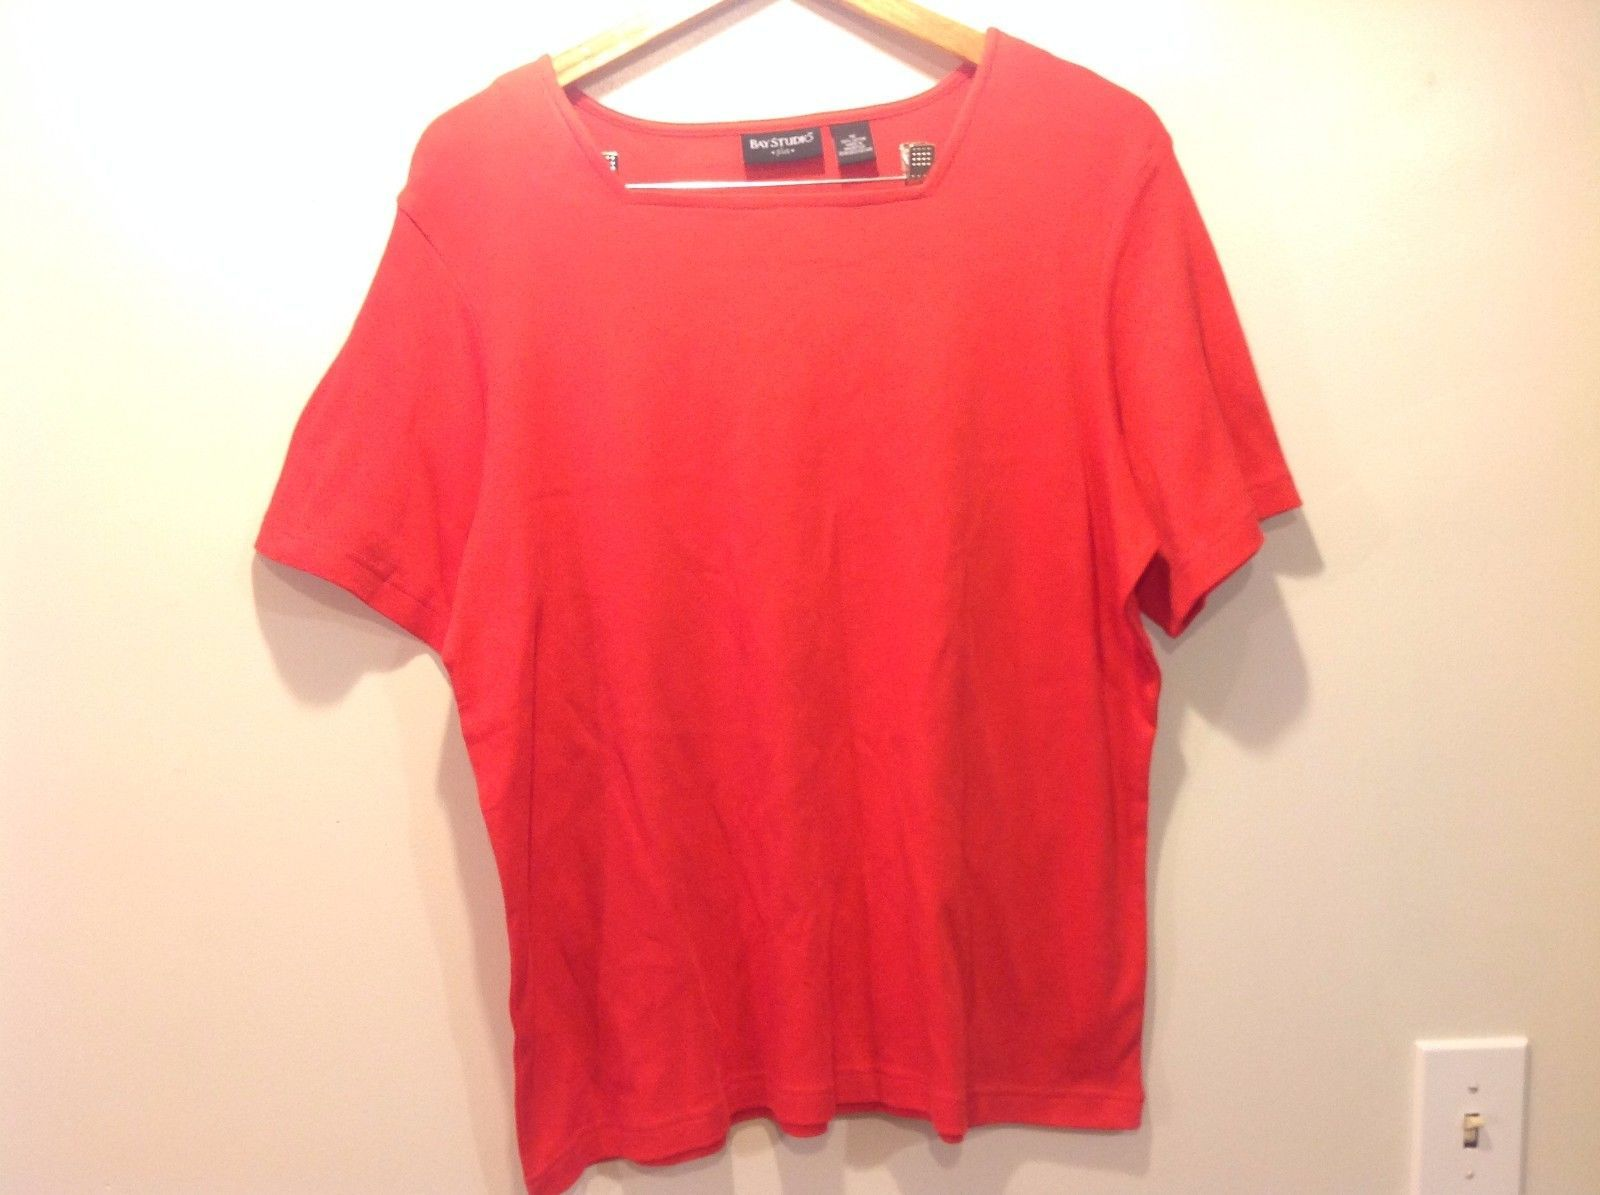 Bay Studio Red Short Sleeve Dance Style Cut Shirt Cotton Size 1x